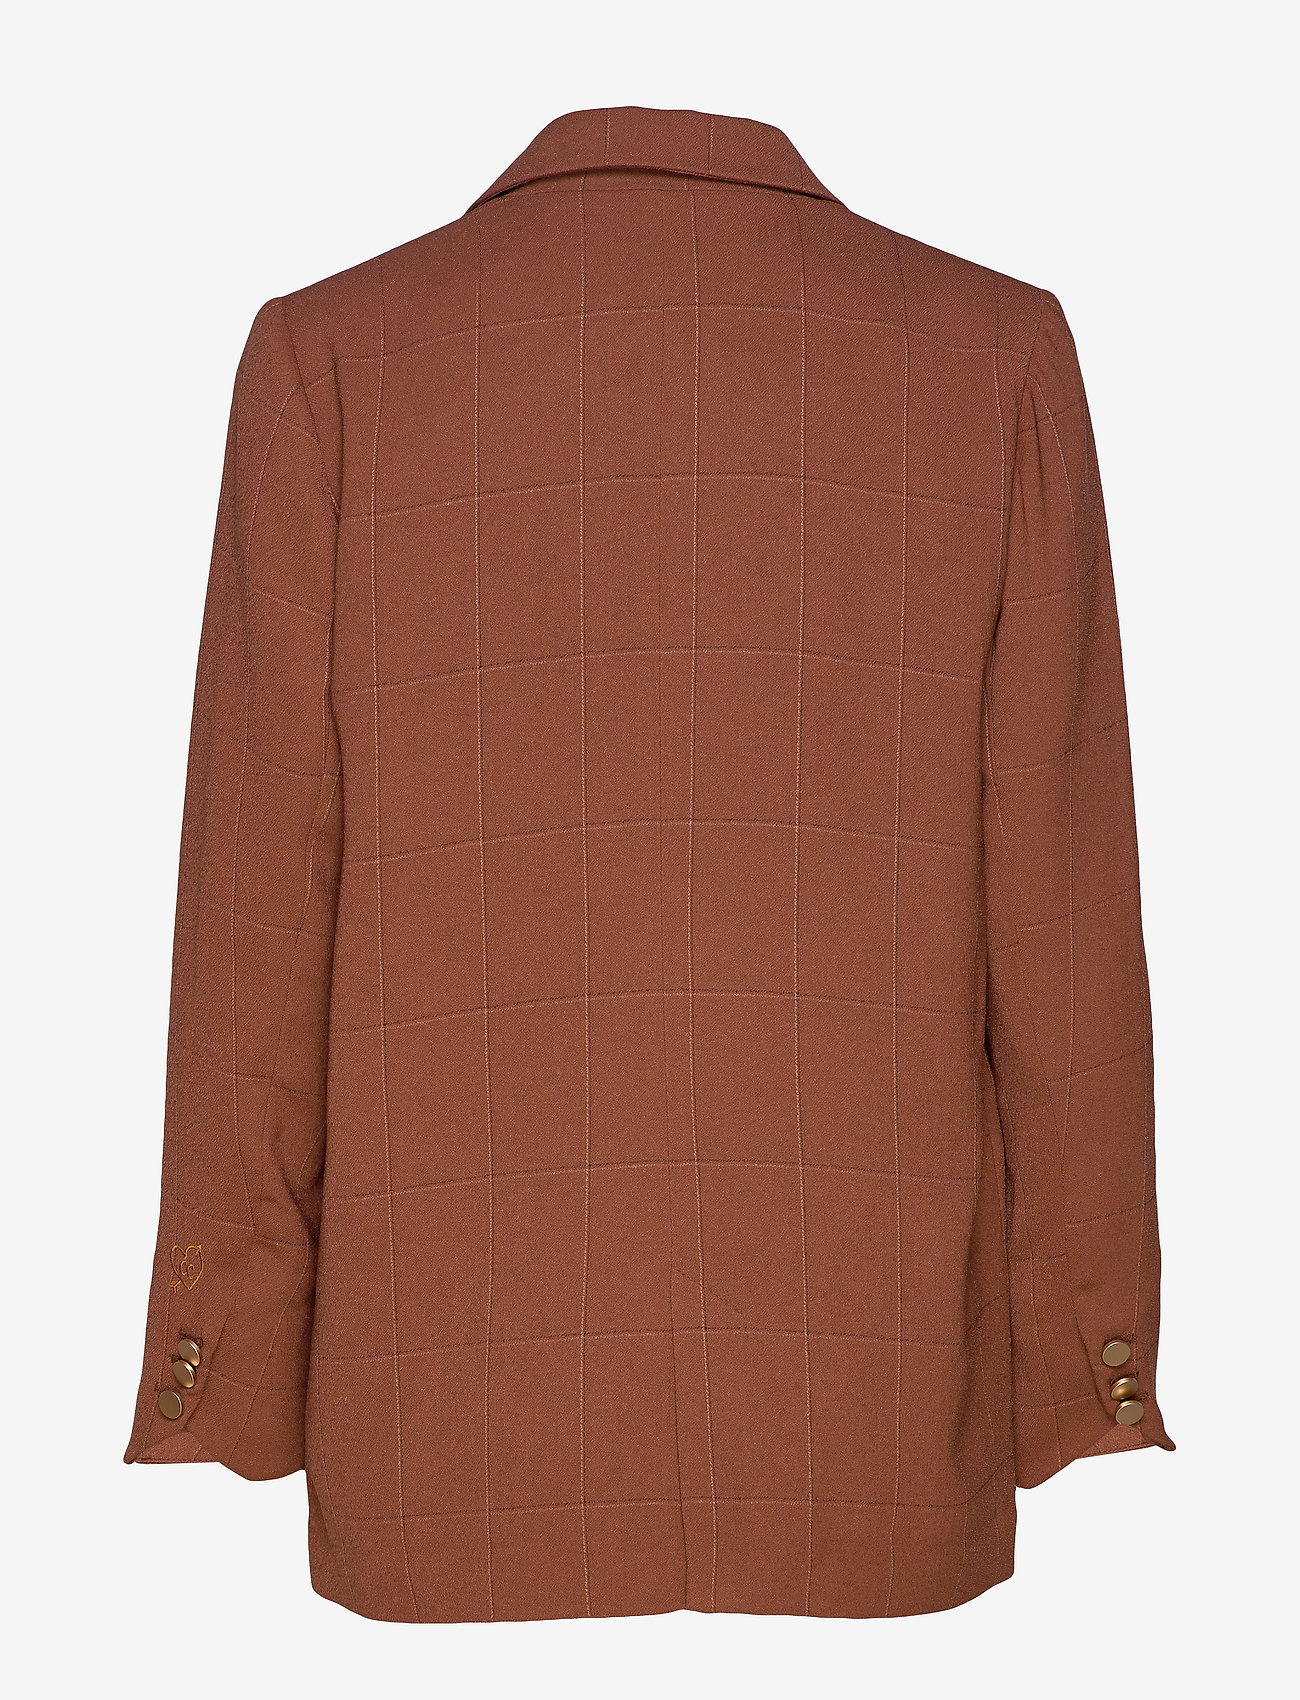 Suit Jacket In Checked Quality (Chocolate Nut) - Coster Copenhagen 62Us5f